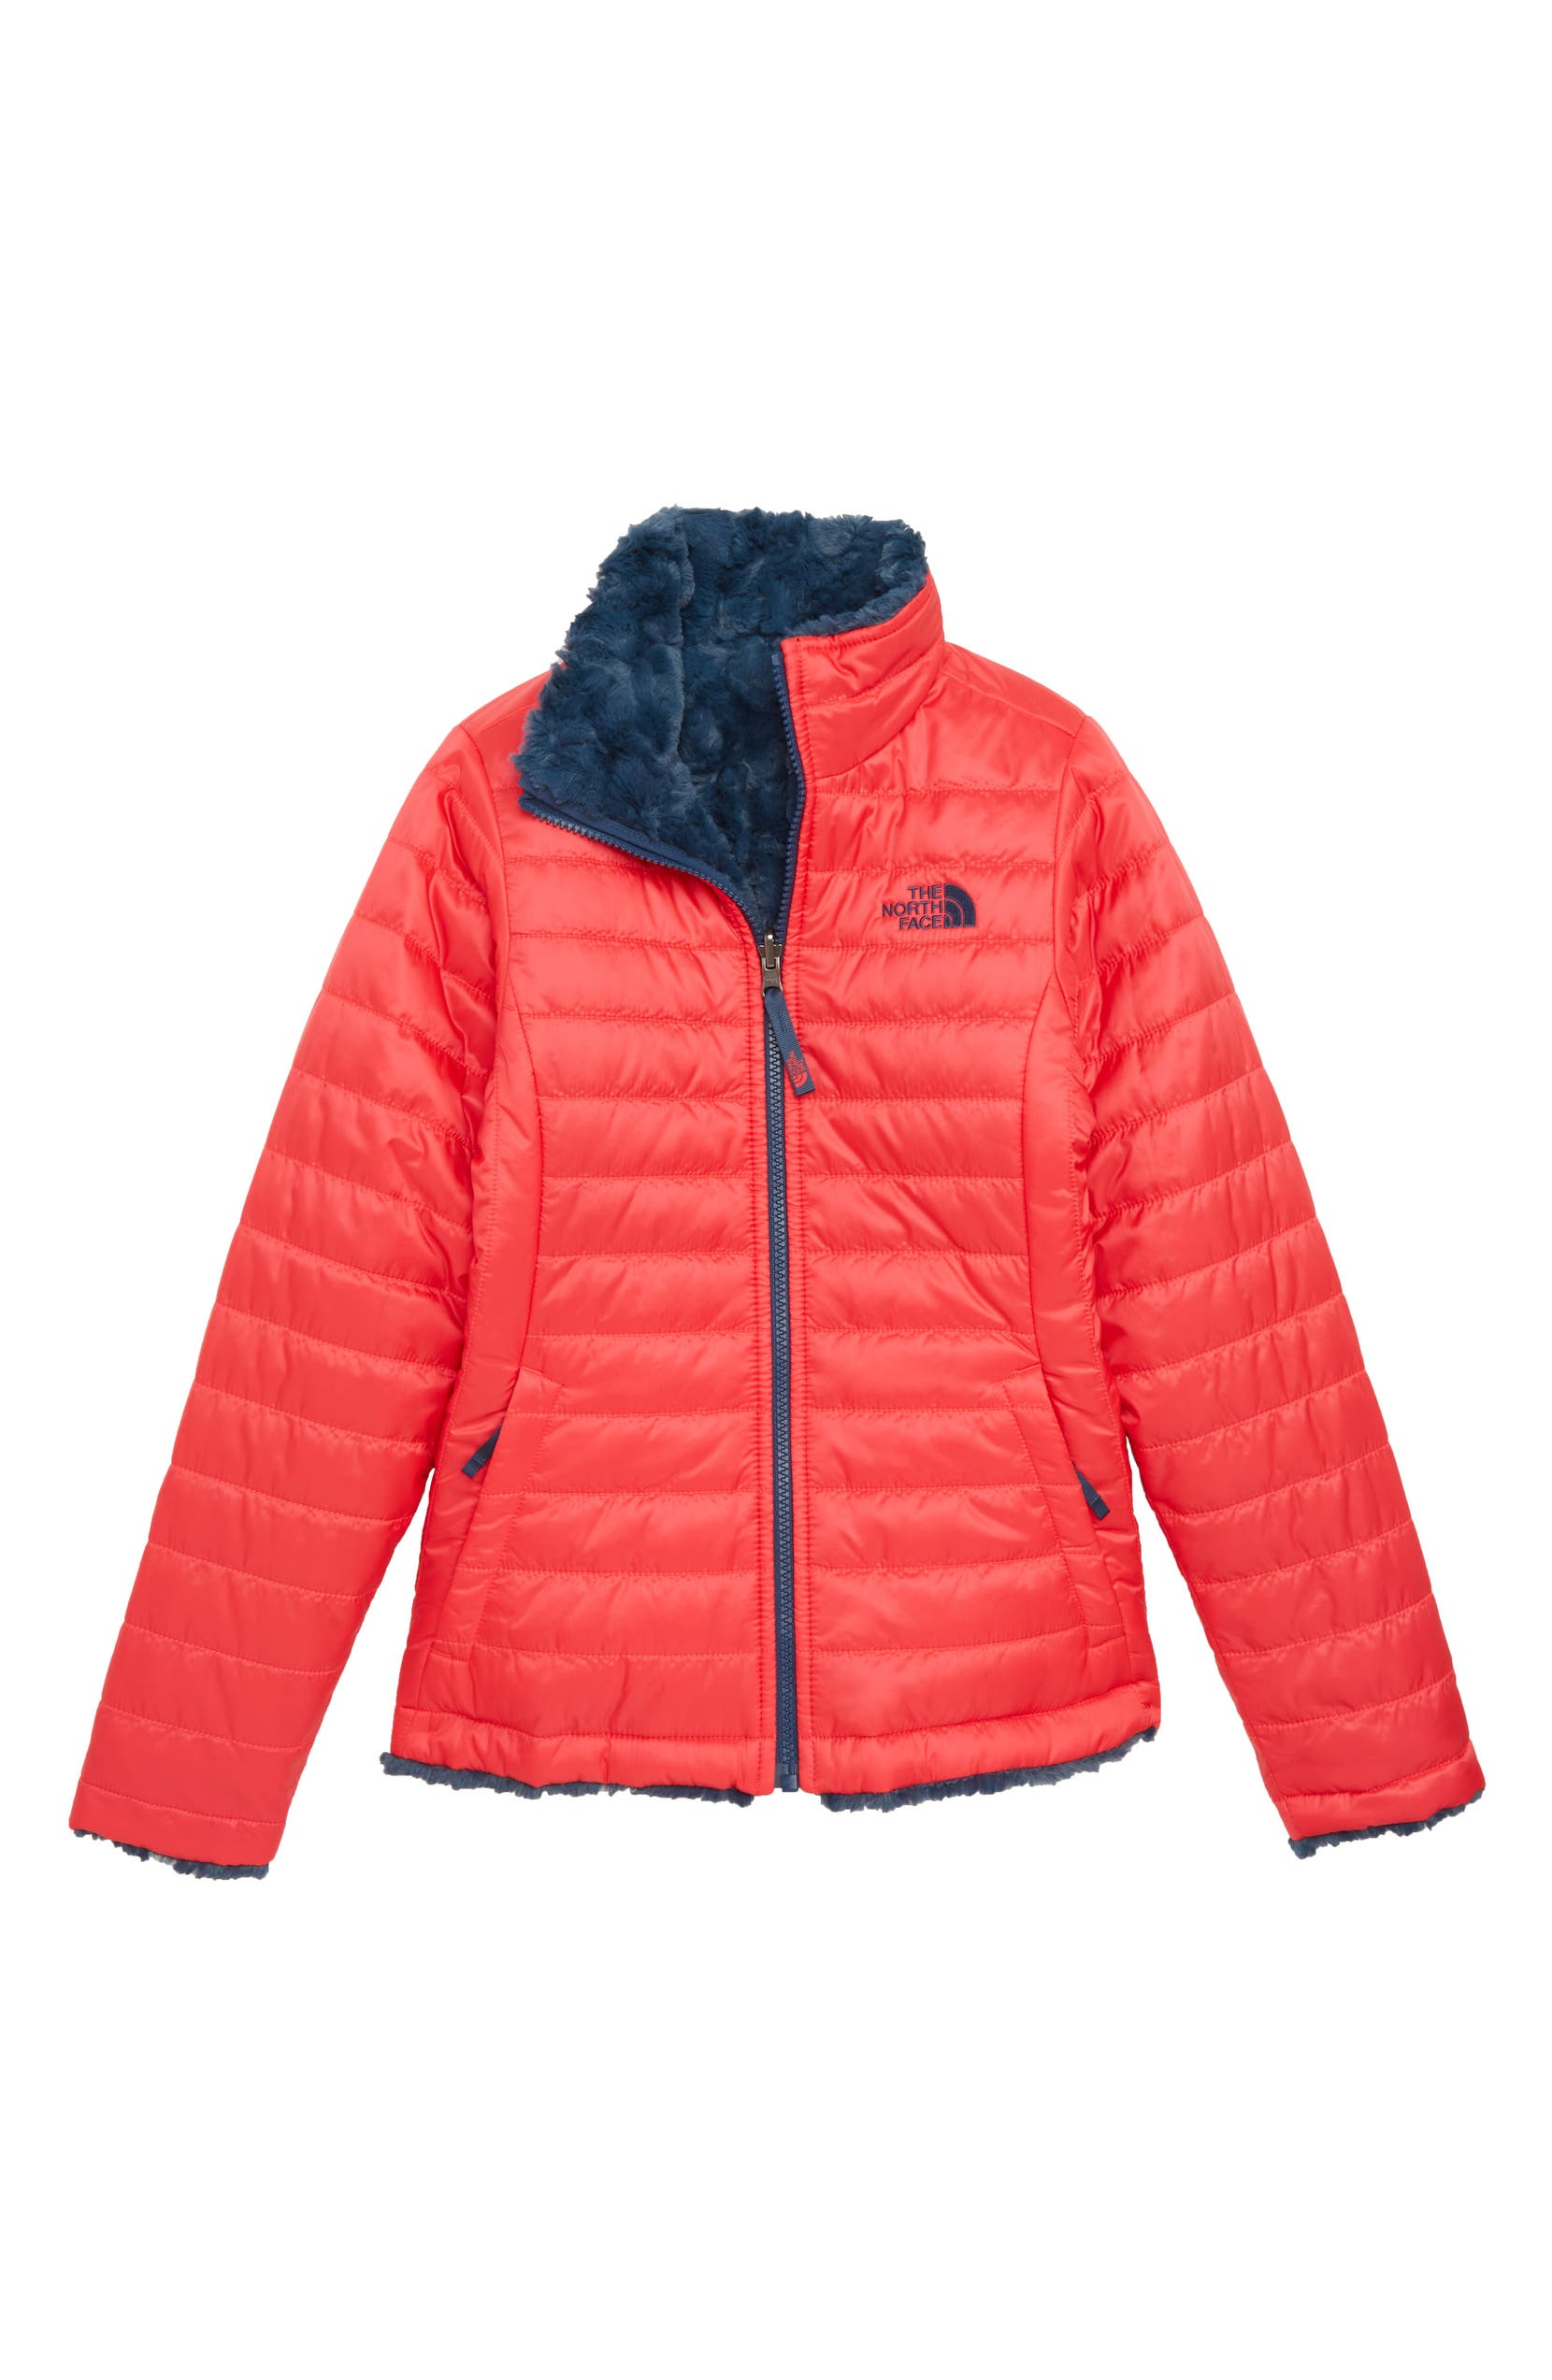 a3a51914dc The North Face Mossbud Swirl Reversible Water Repellent Jacket (Big Girls)